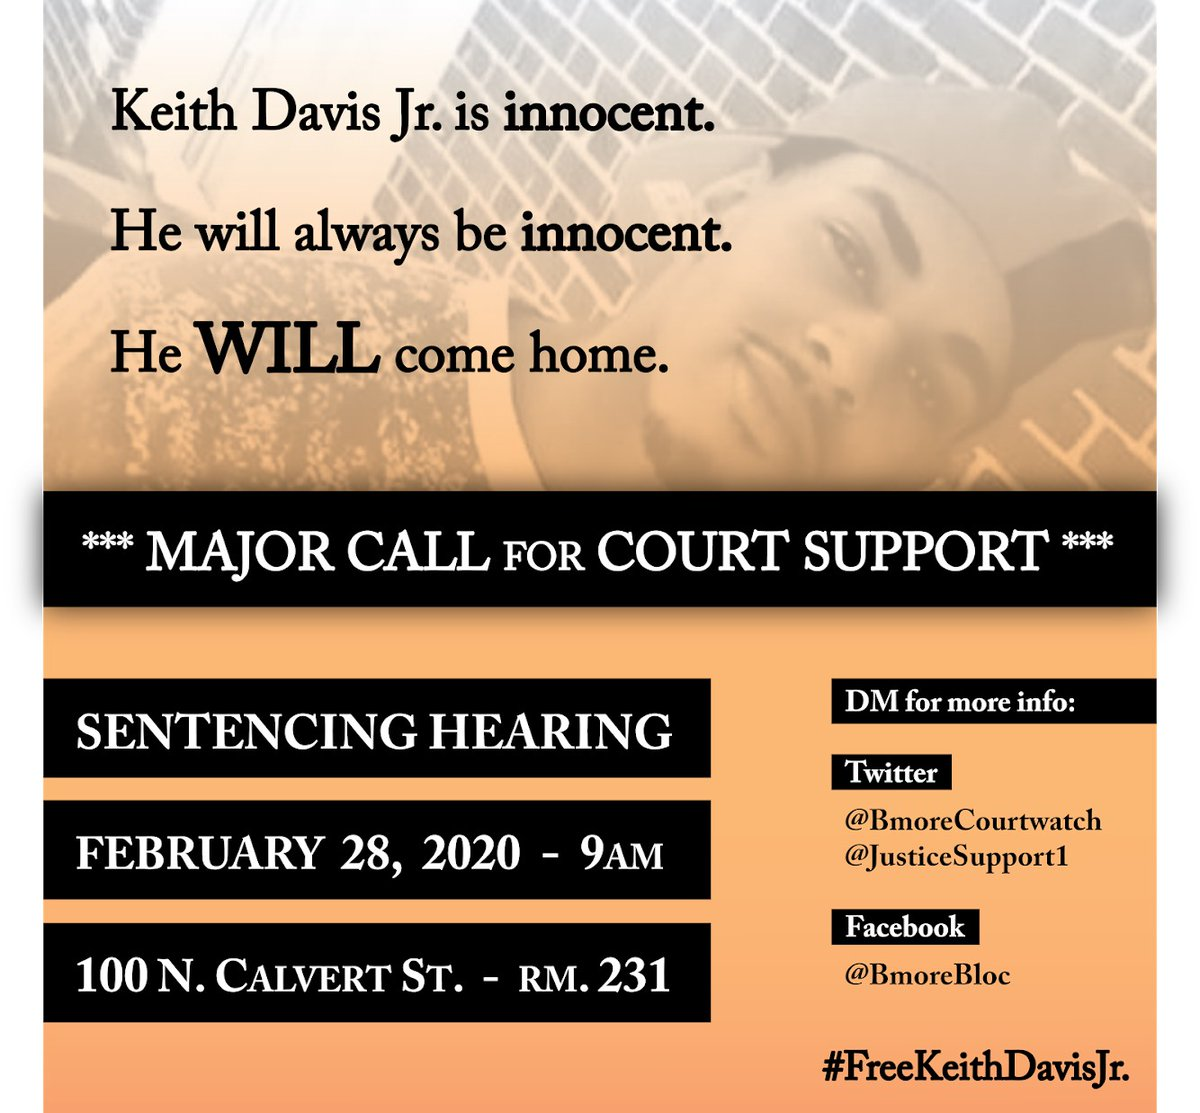 Reminder: The sentencing hearing for #KeithDavisJr is February 28 at 9:30 a.m. Please plan to attend if you are able. #FreeKeithDavisJr